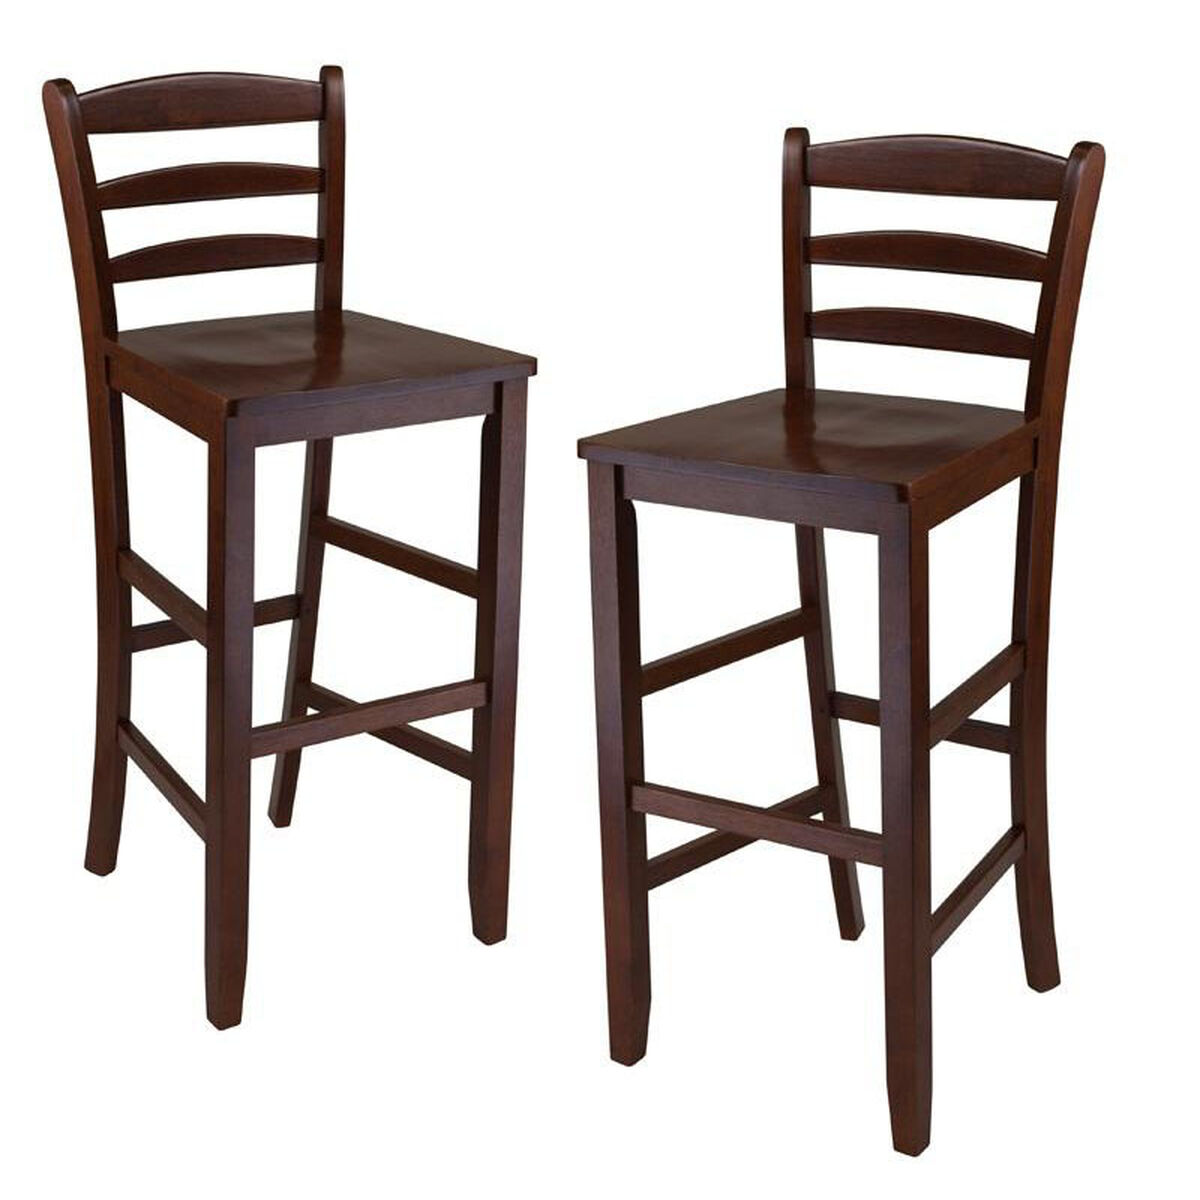 Our Ladder Back Bar Stools Set Of 2 Is On Now